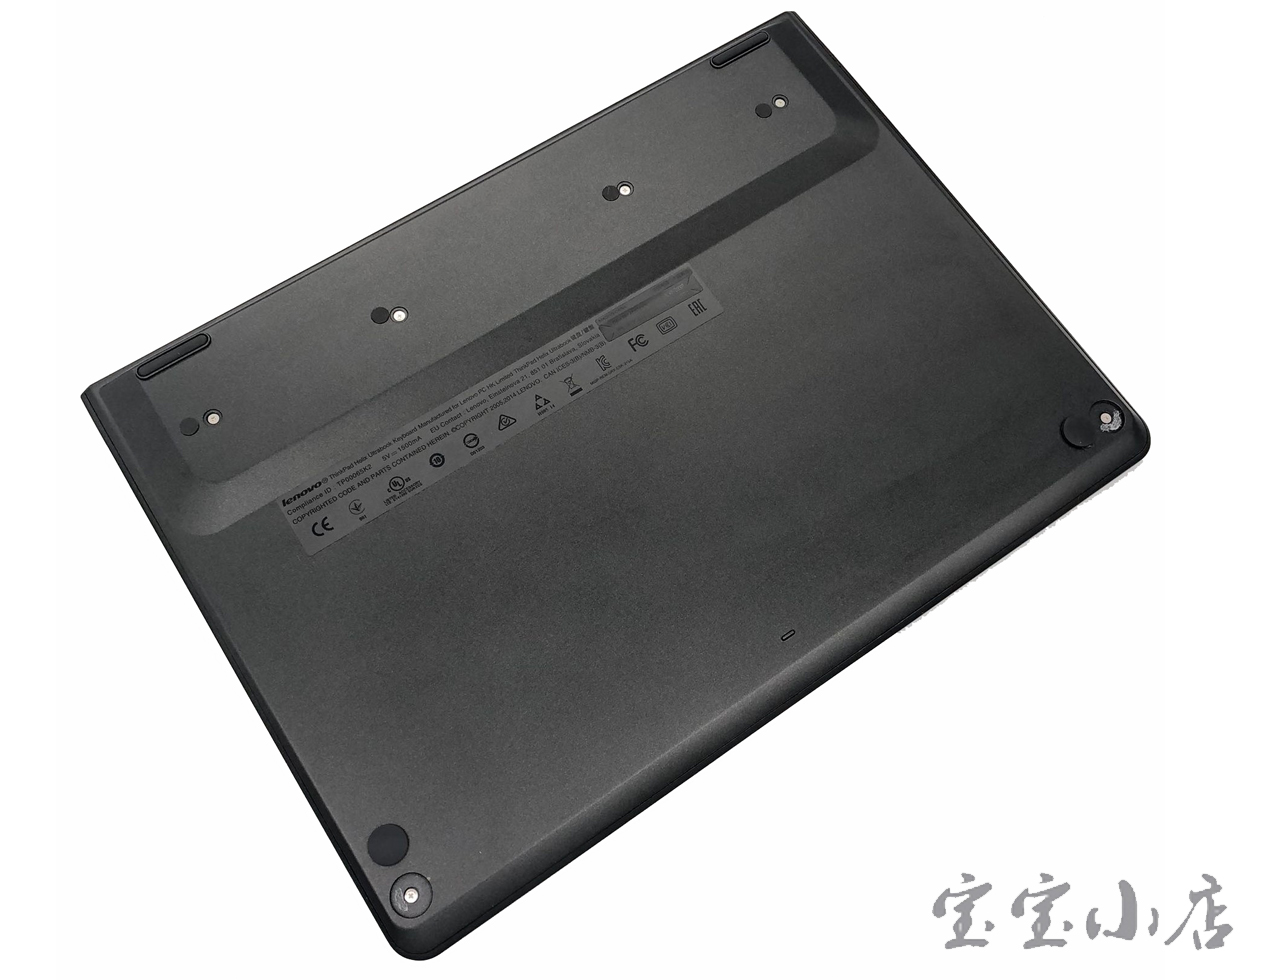 联想LENOVO ThinkPad Helix Ultrabook ltalian IT Keyboard 00HW417 底座 键盘 拆解